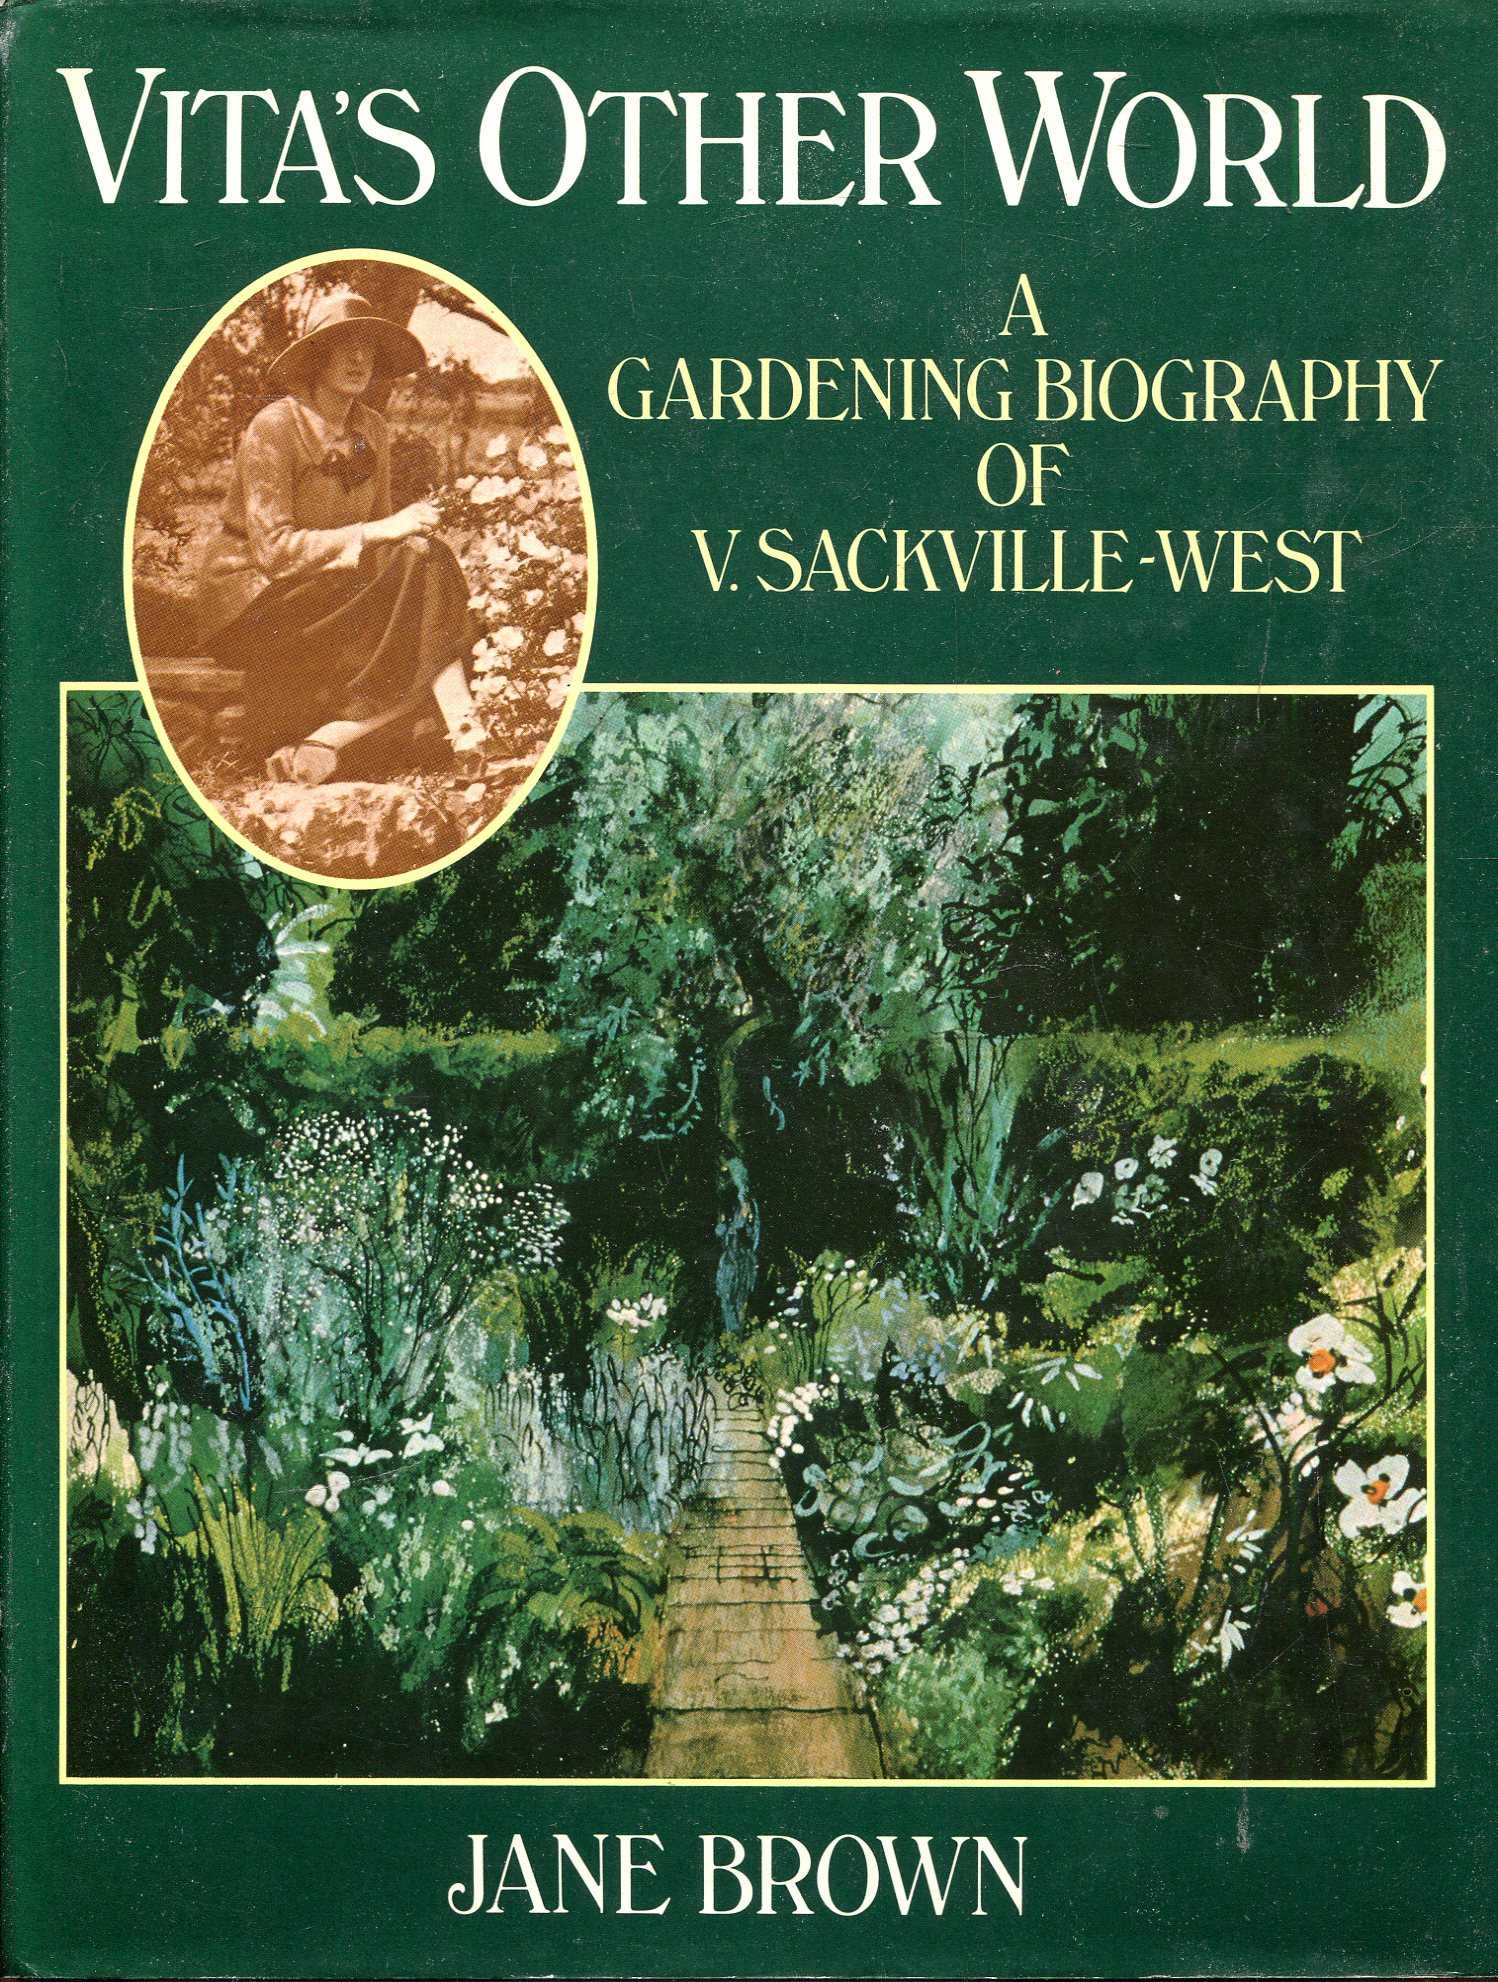 Image for Vita's Other World: A Gardening Biography of V. Sackville West